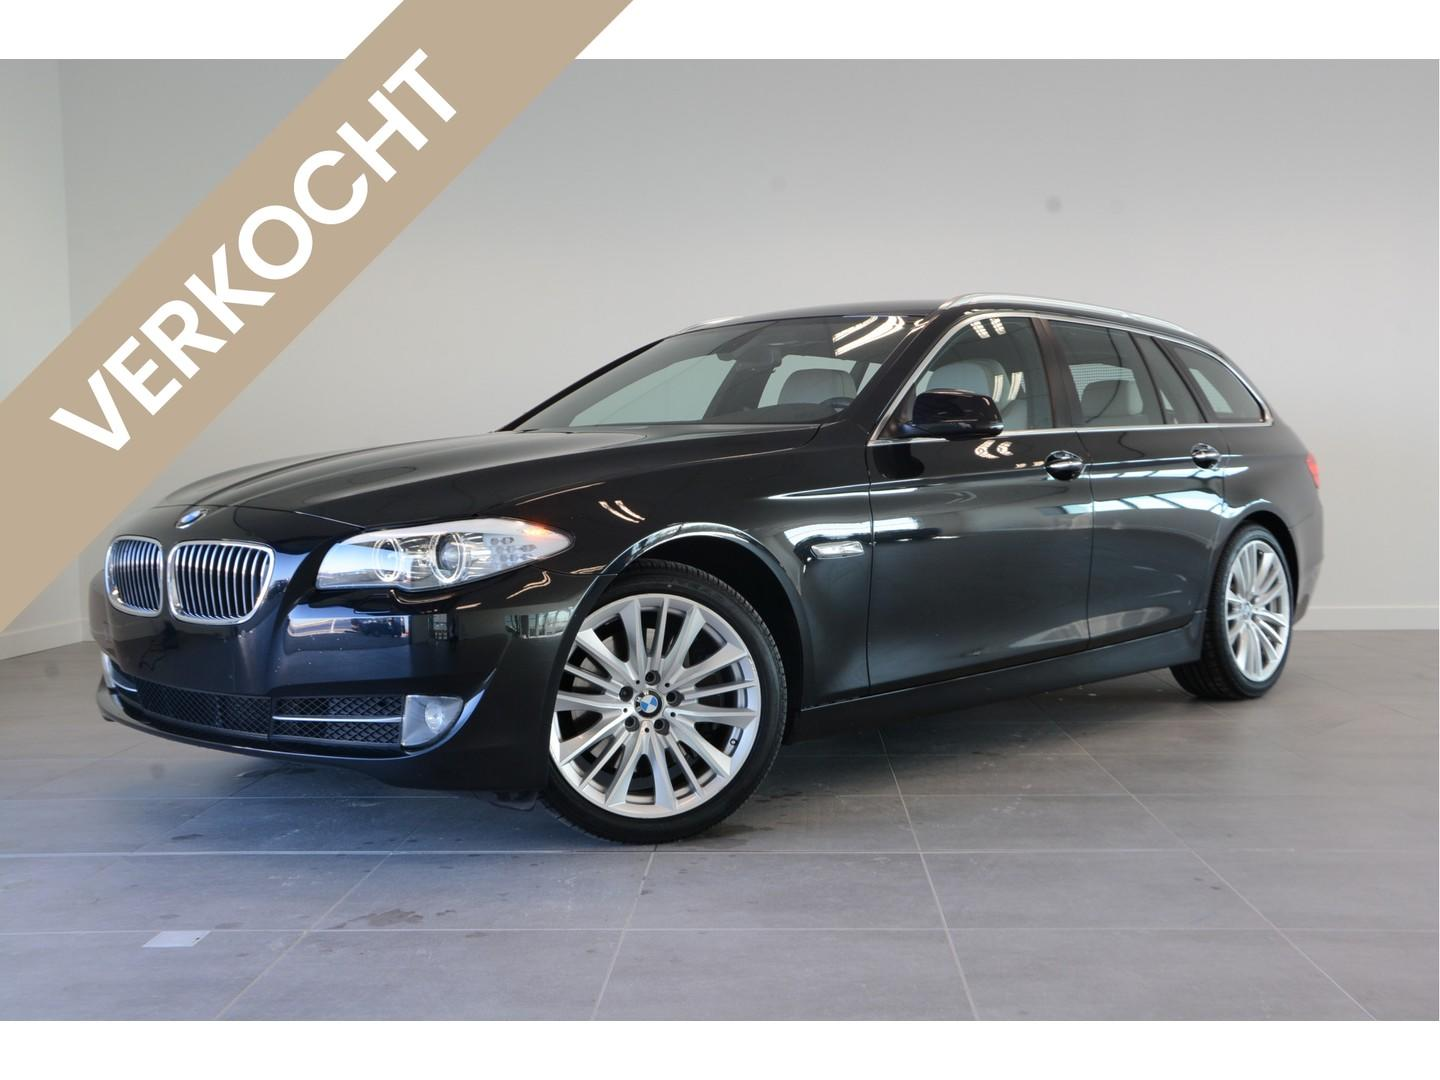 Bmw 5 serie Touring 535i high executive aut.